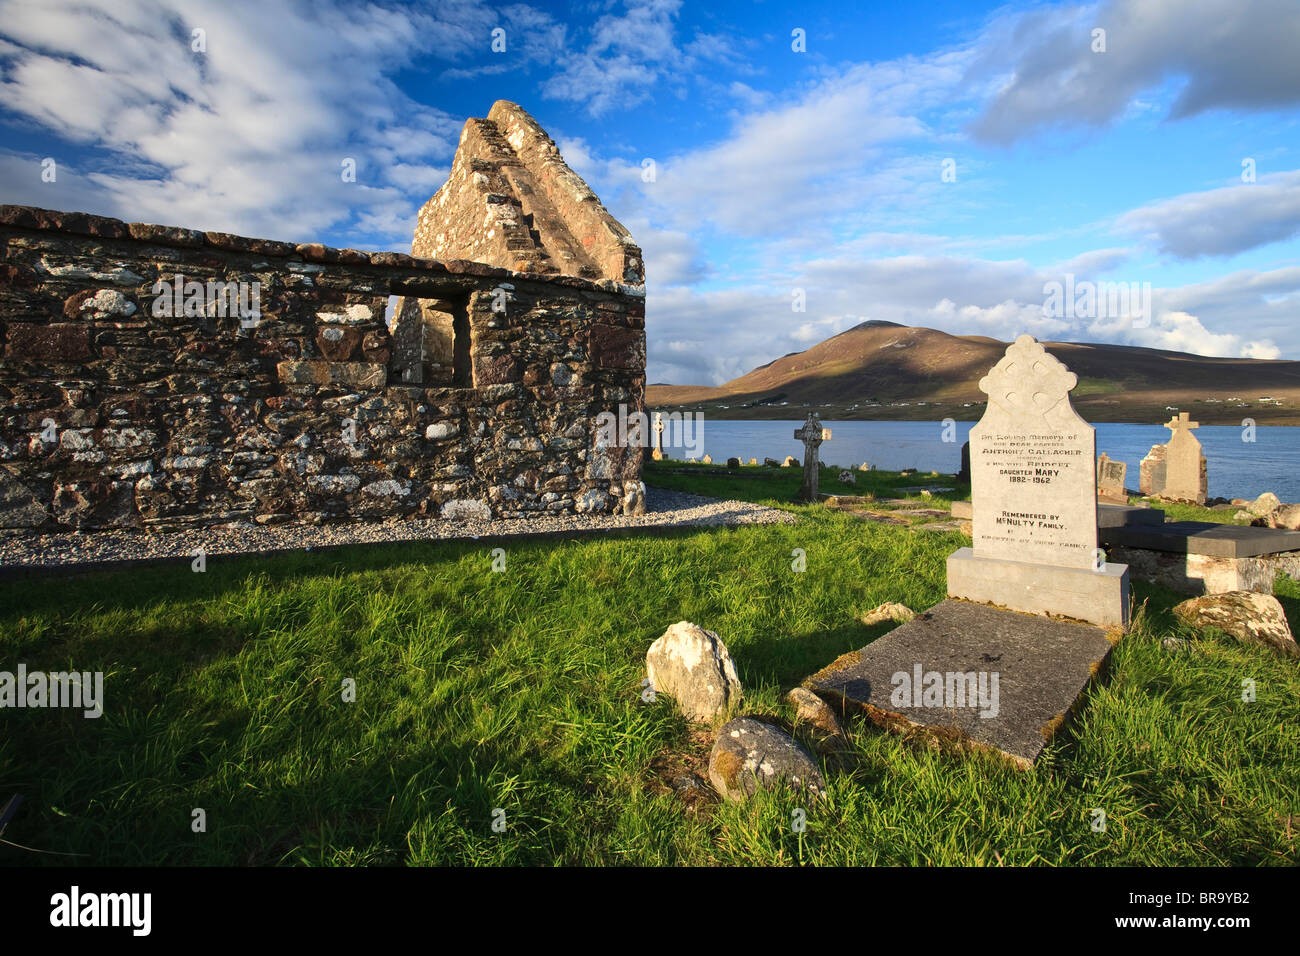 Churchyard on Achill Island, County Mayo, Ireland - Stock Image